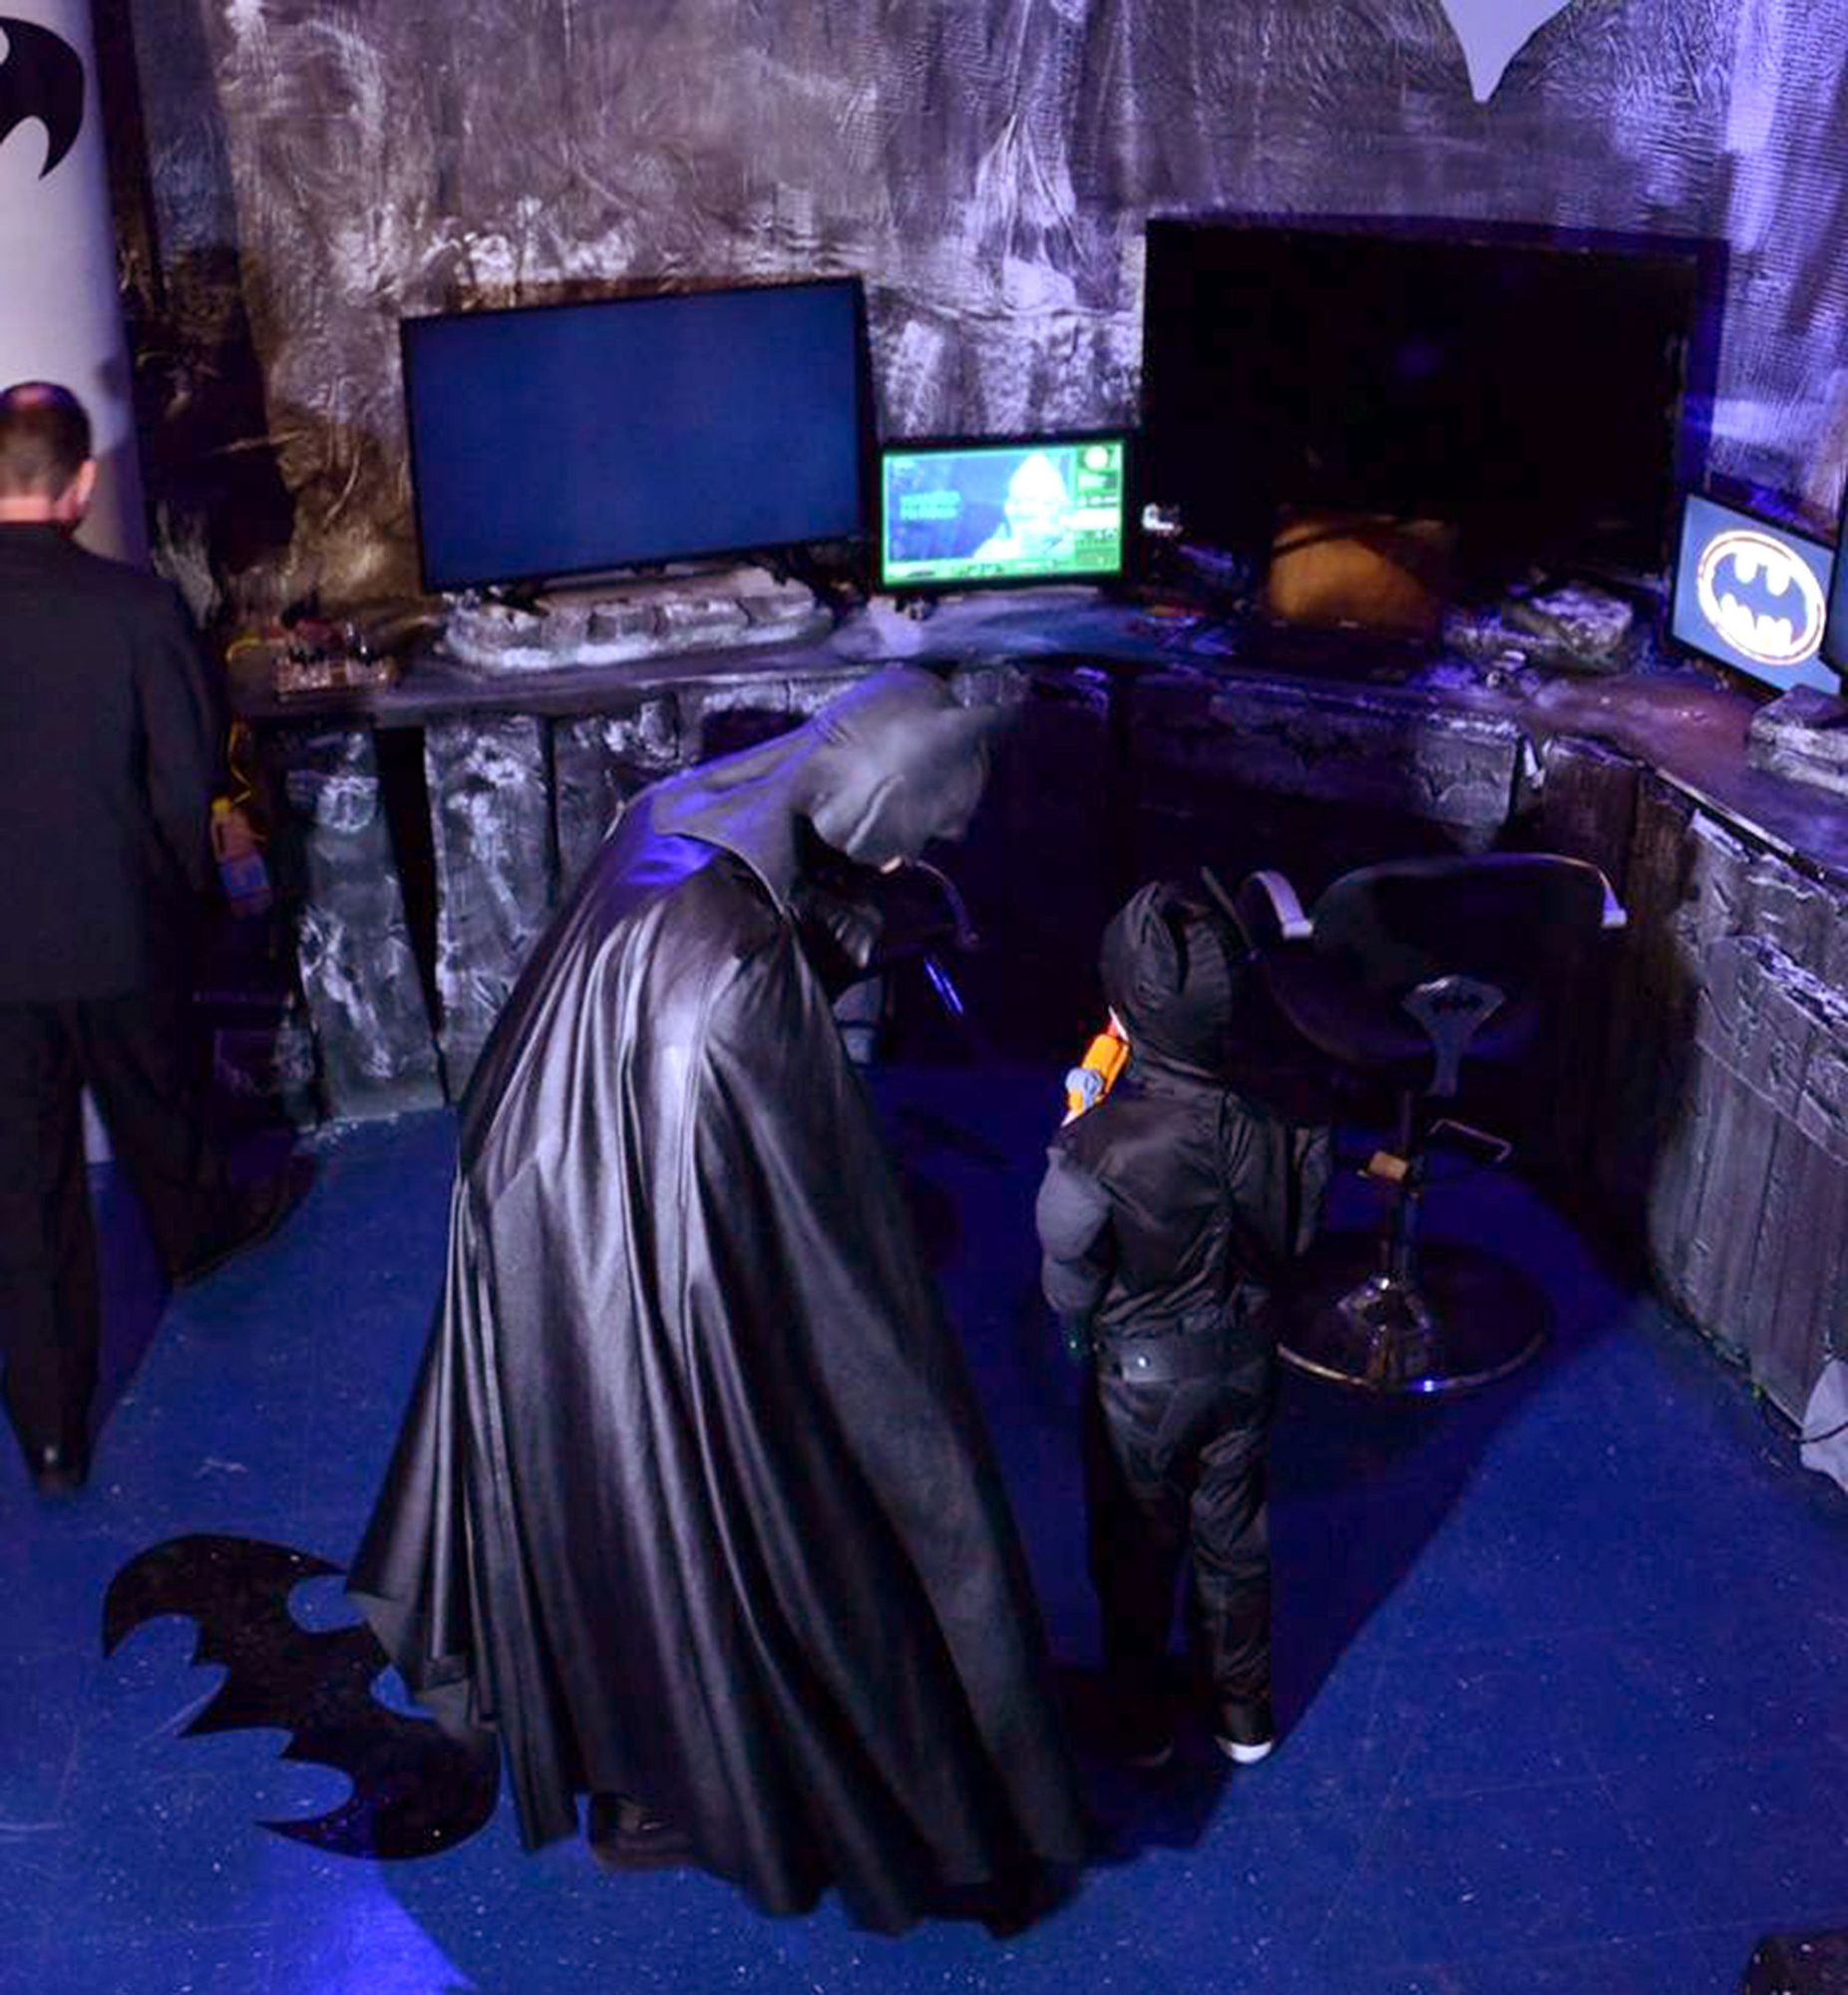 7-Year-Old with Brain Cancer Meets His Favorite Superhero Inside an Actual Batcave Ty Verbanas Credit: courtesy of Julie Hirsch